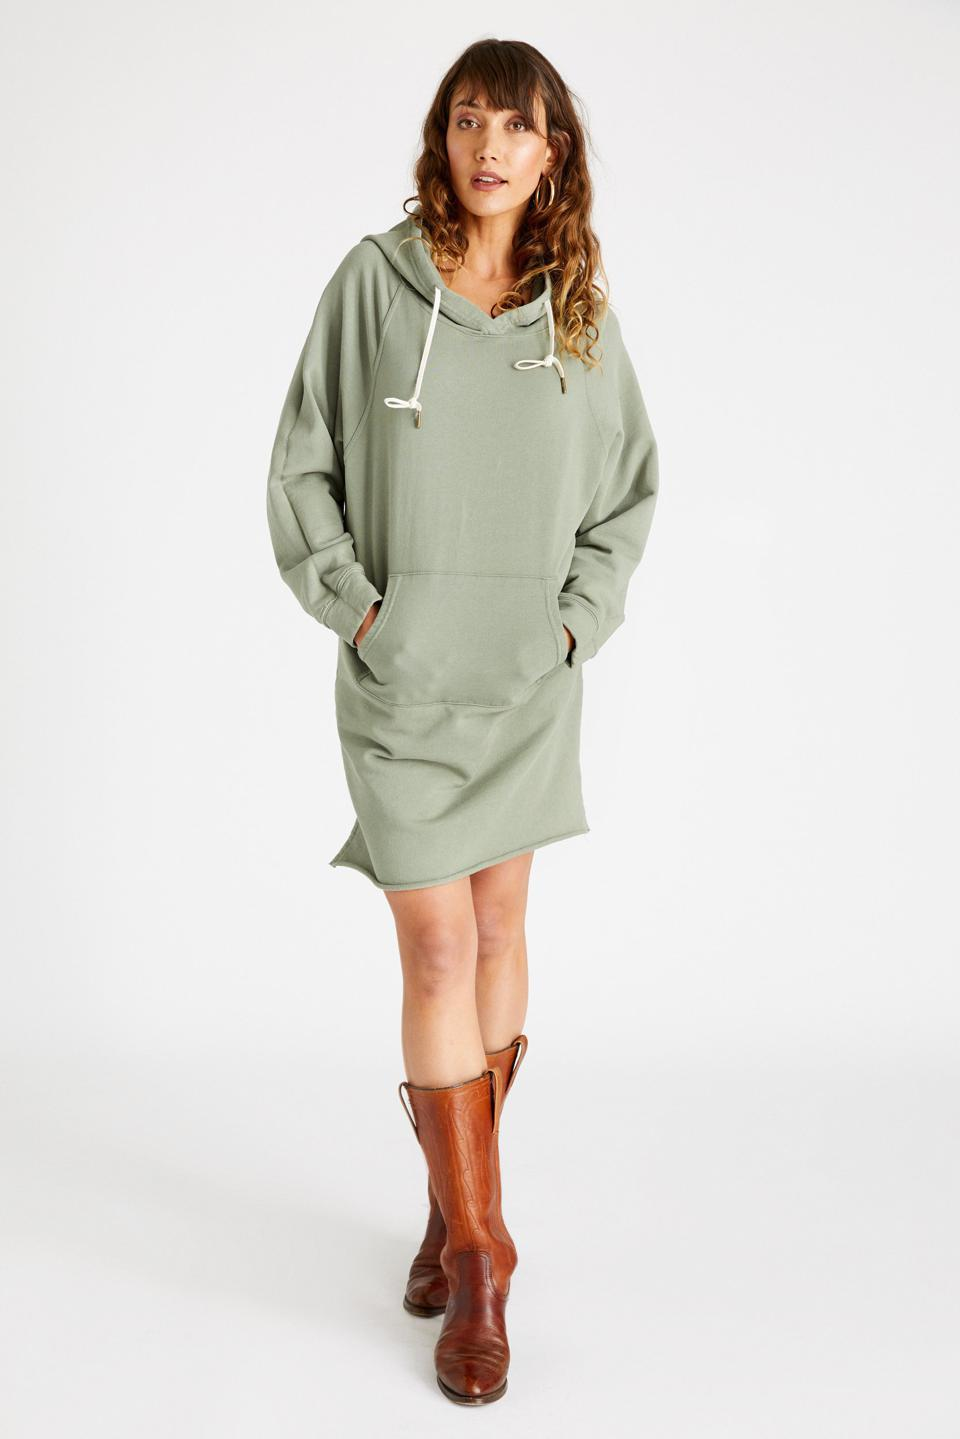 ETICA Layla Hooded Knit Dress with hood